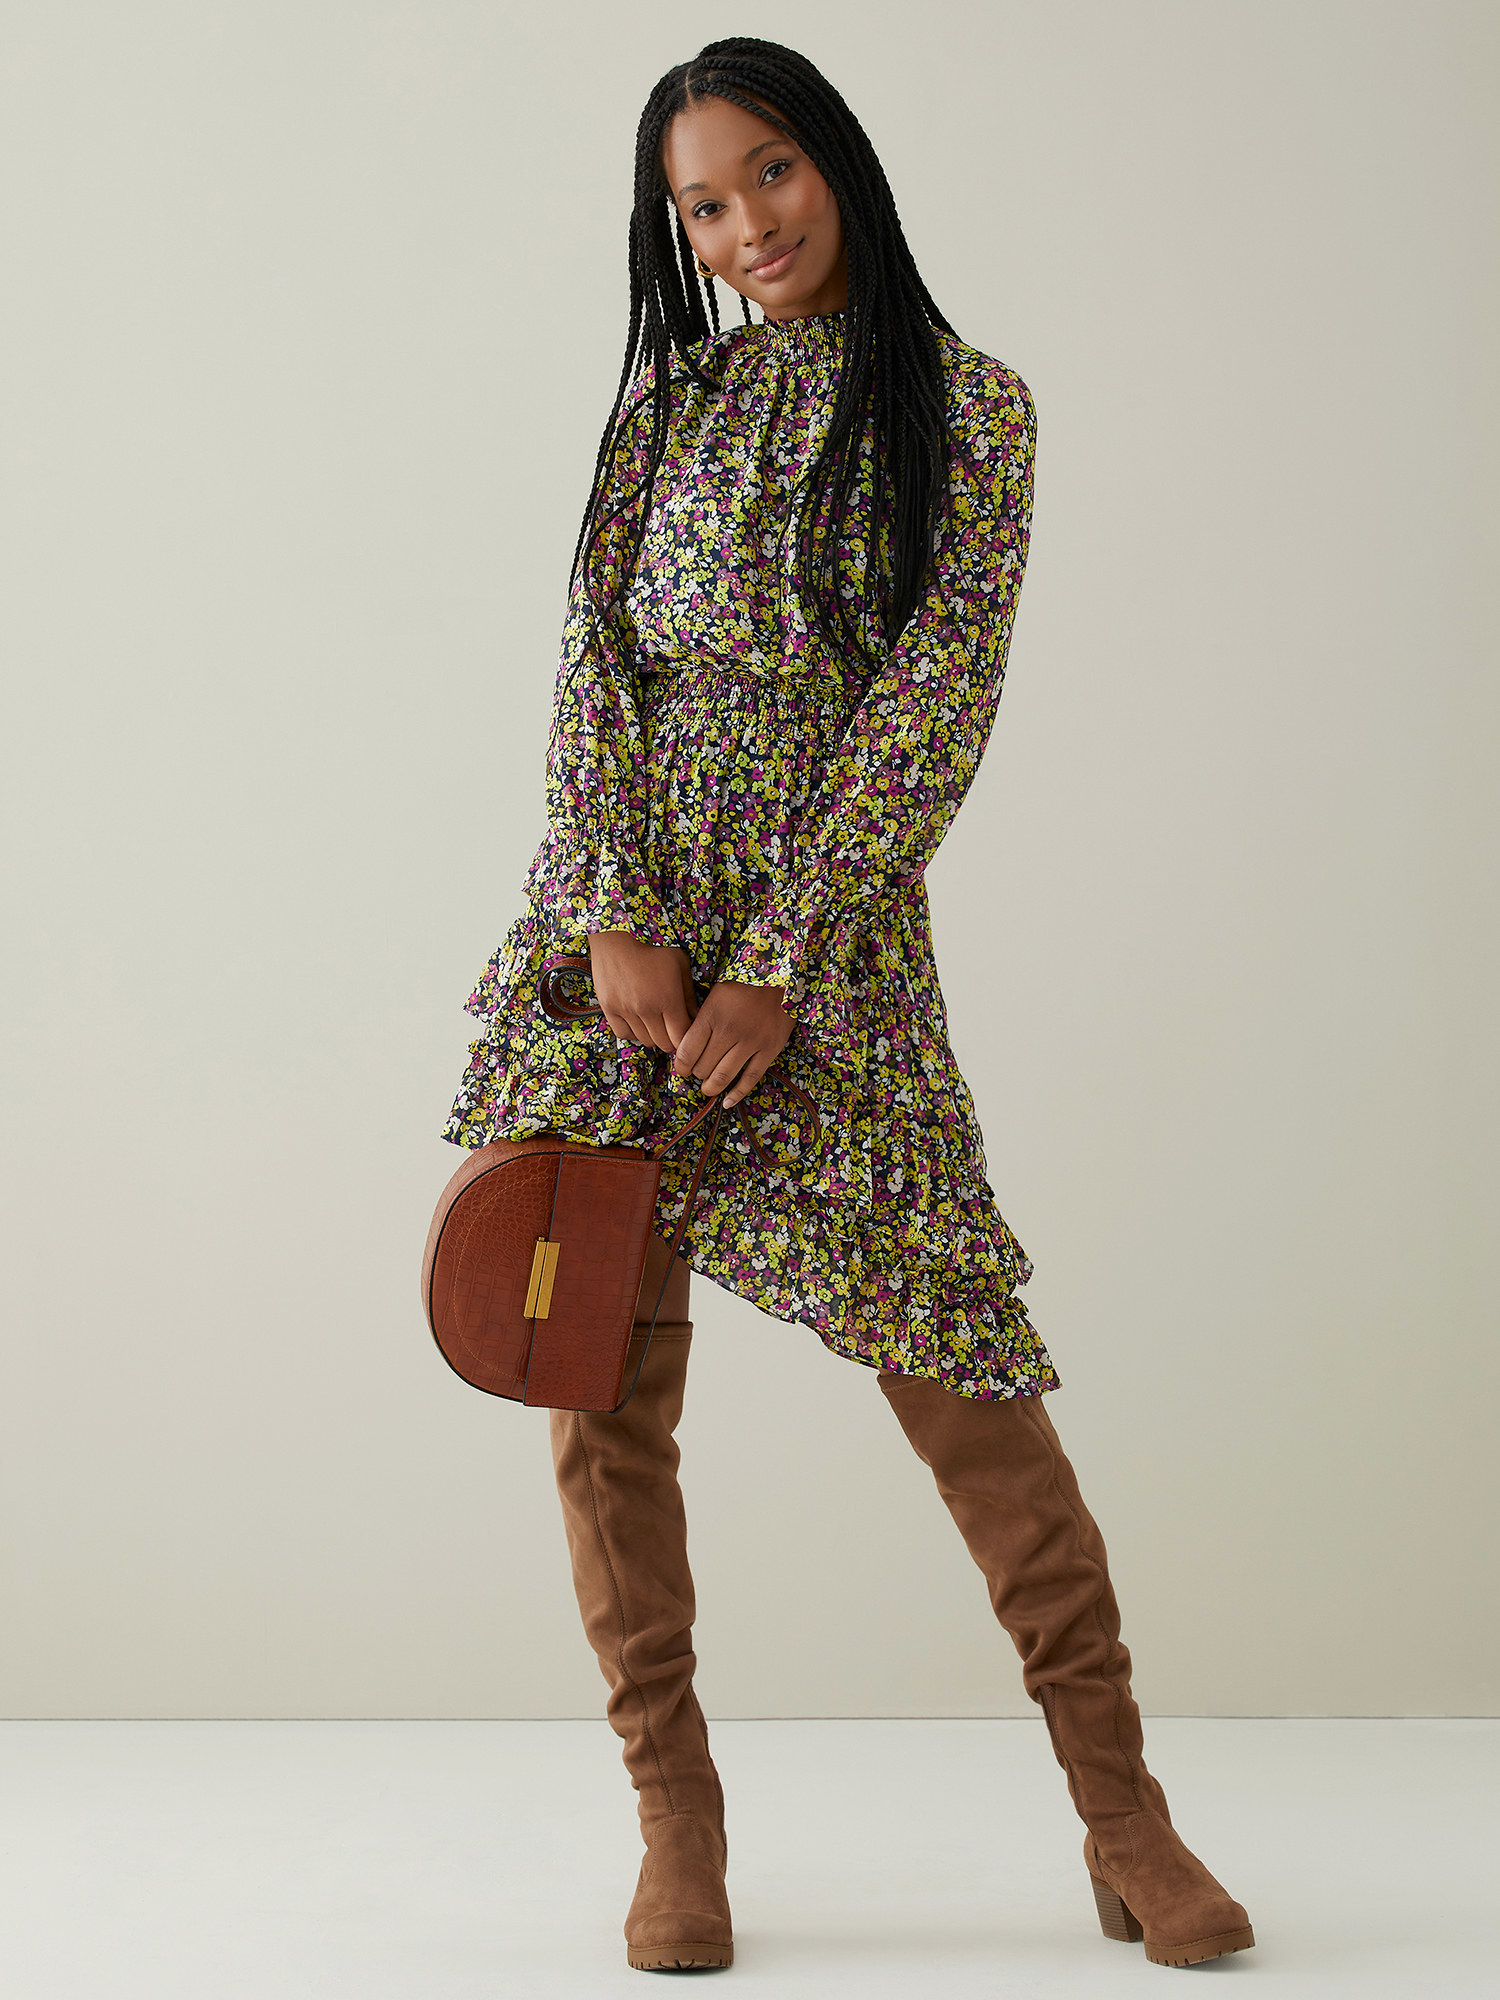 Model wears long-sleeve dress with small green and purple floral pattern